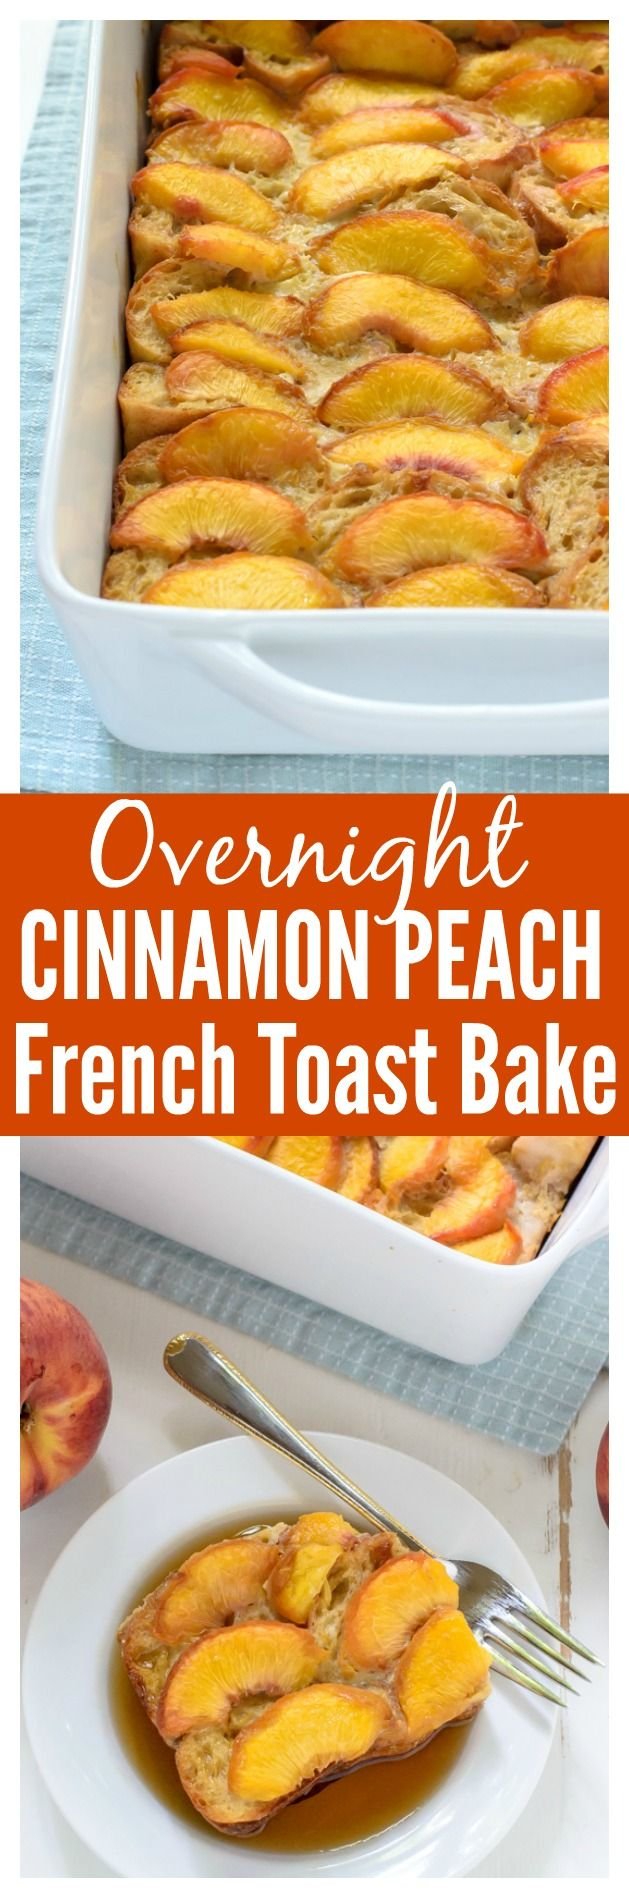 Overnight Cinnamon Peach French Toast Bake                                                                                                                                                                                 More